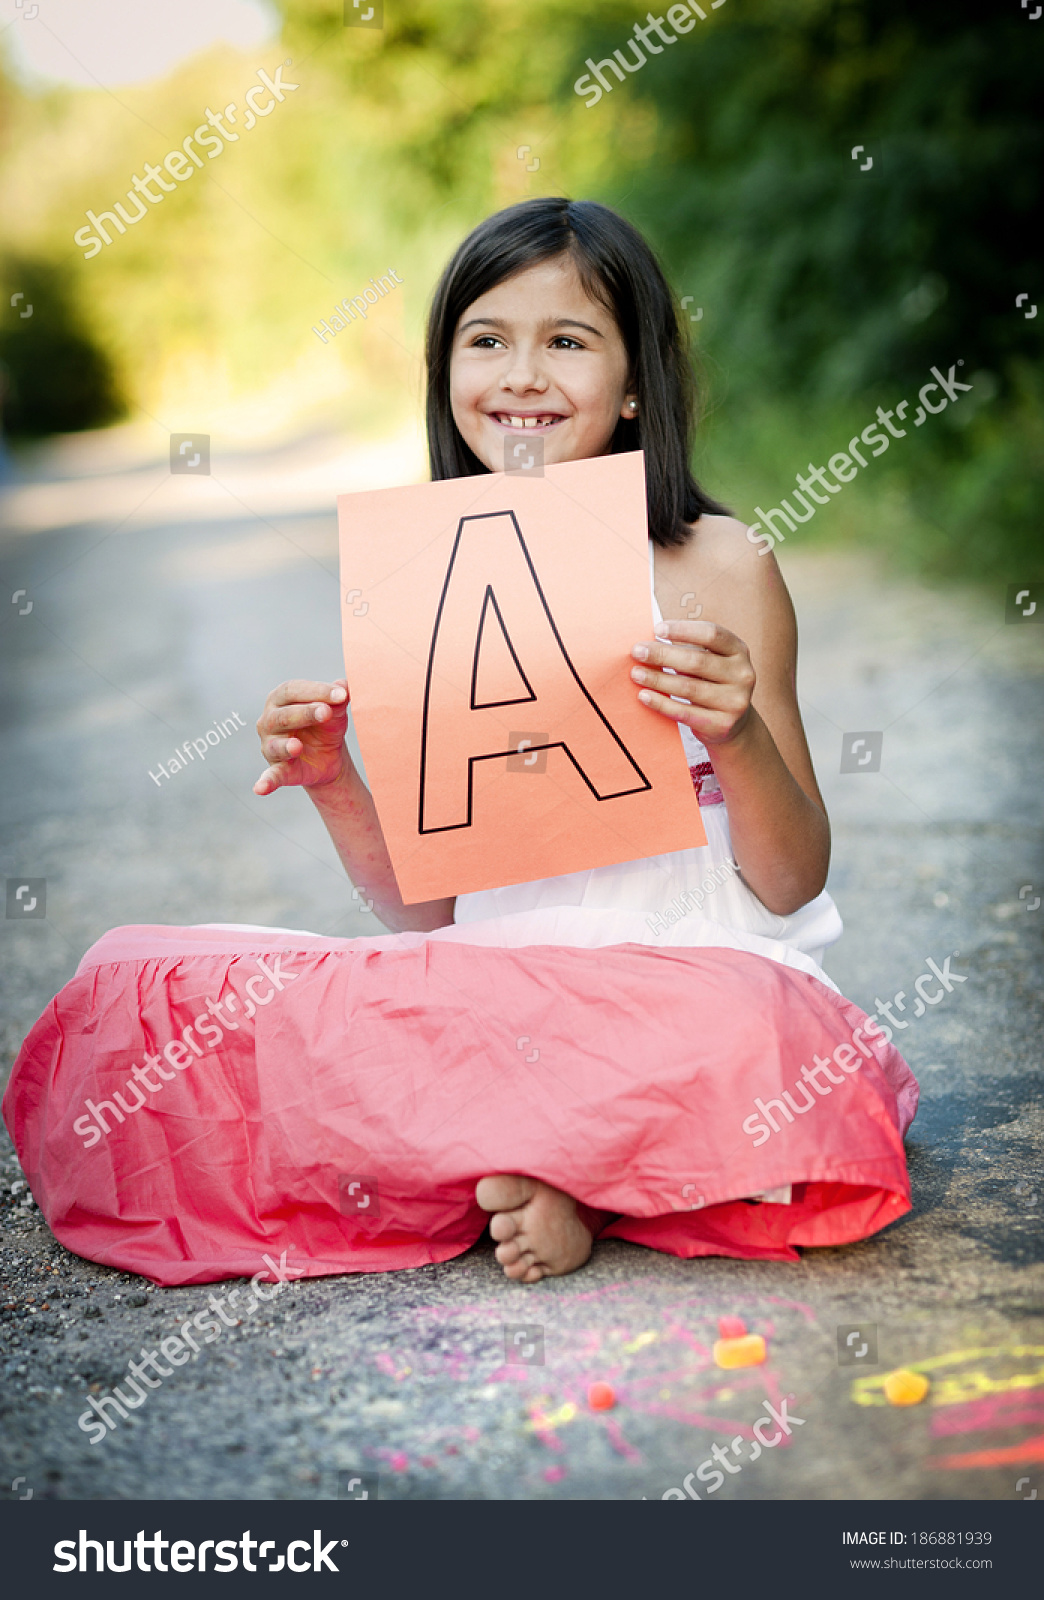 https://image.shutterstock.com/shutterstock/photos/186881939/display_1500/stock-photo-cute-little-girl-is-laughing-and-showing-letter-a-in-green-sunny-park-186881939.jpg